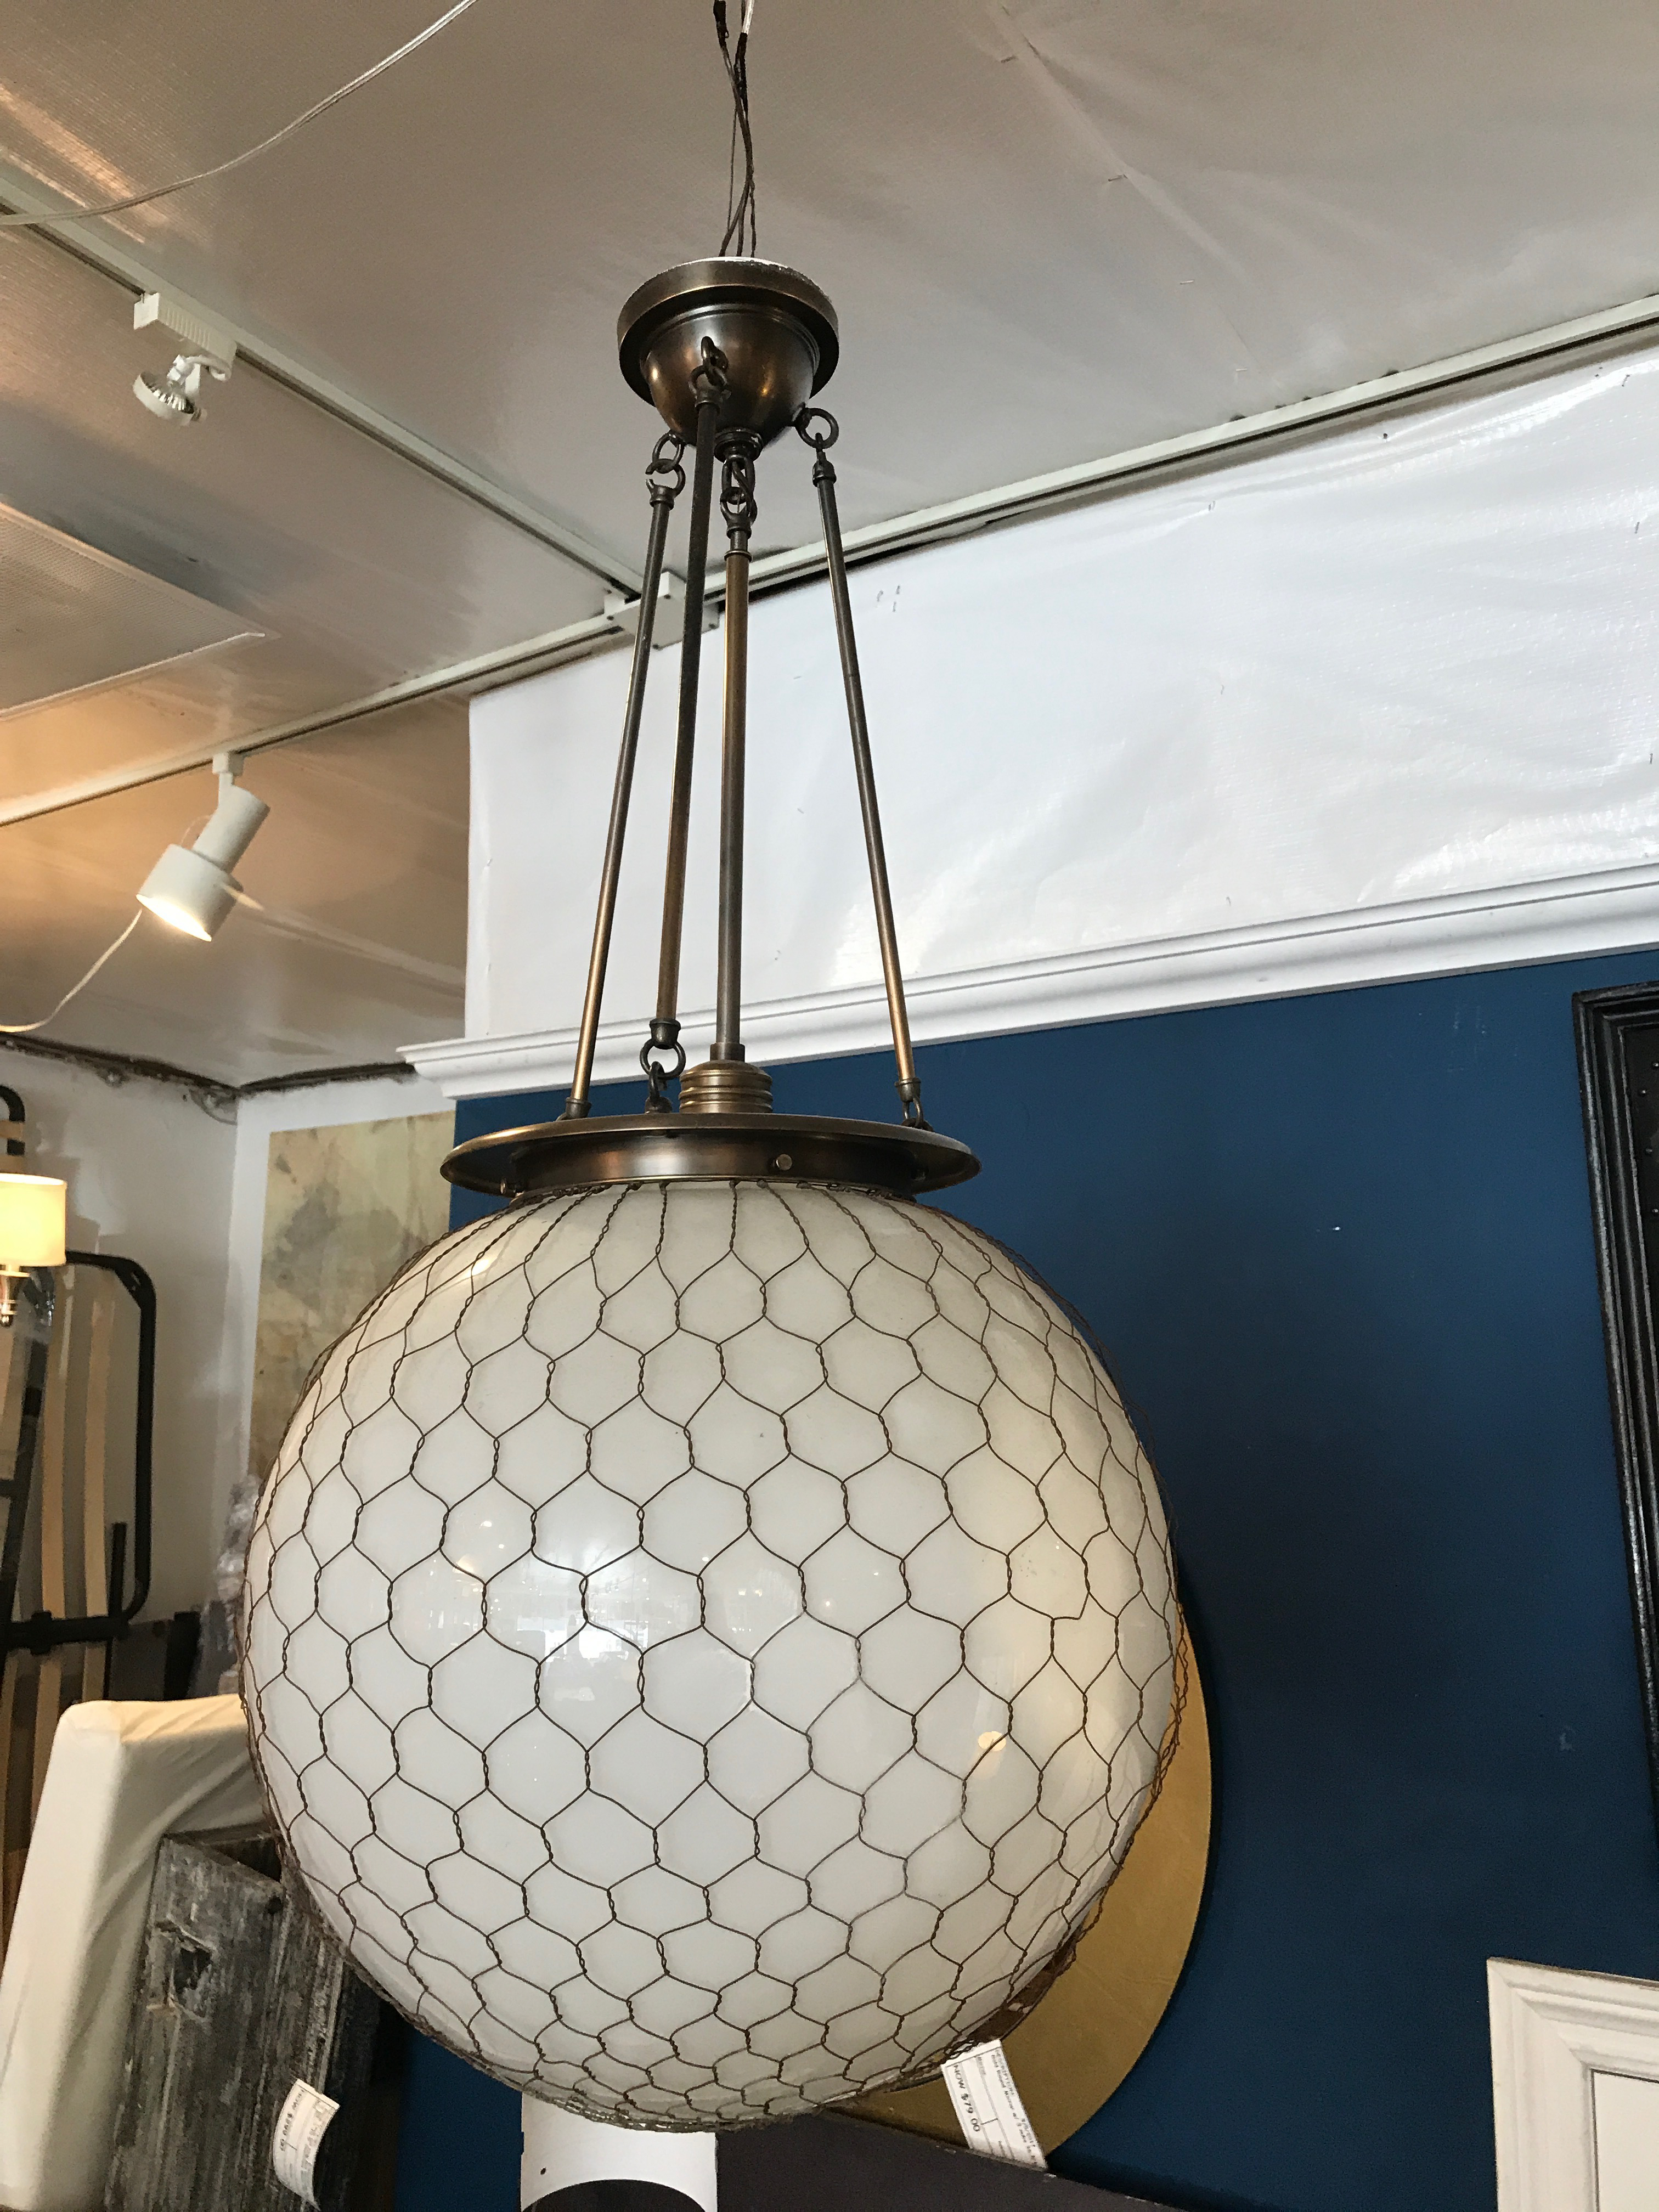 Wire Mesh Ball Pendant Light - Trusted Wiring Diagram